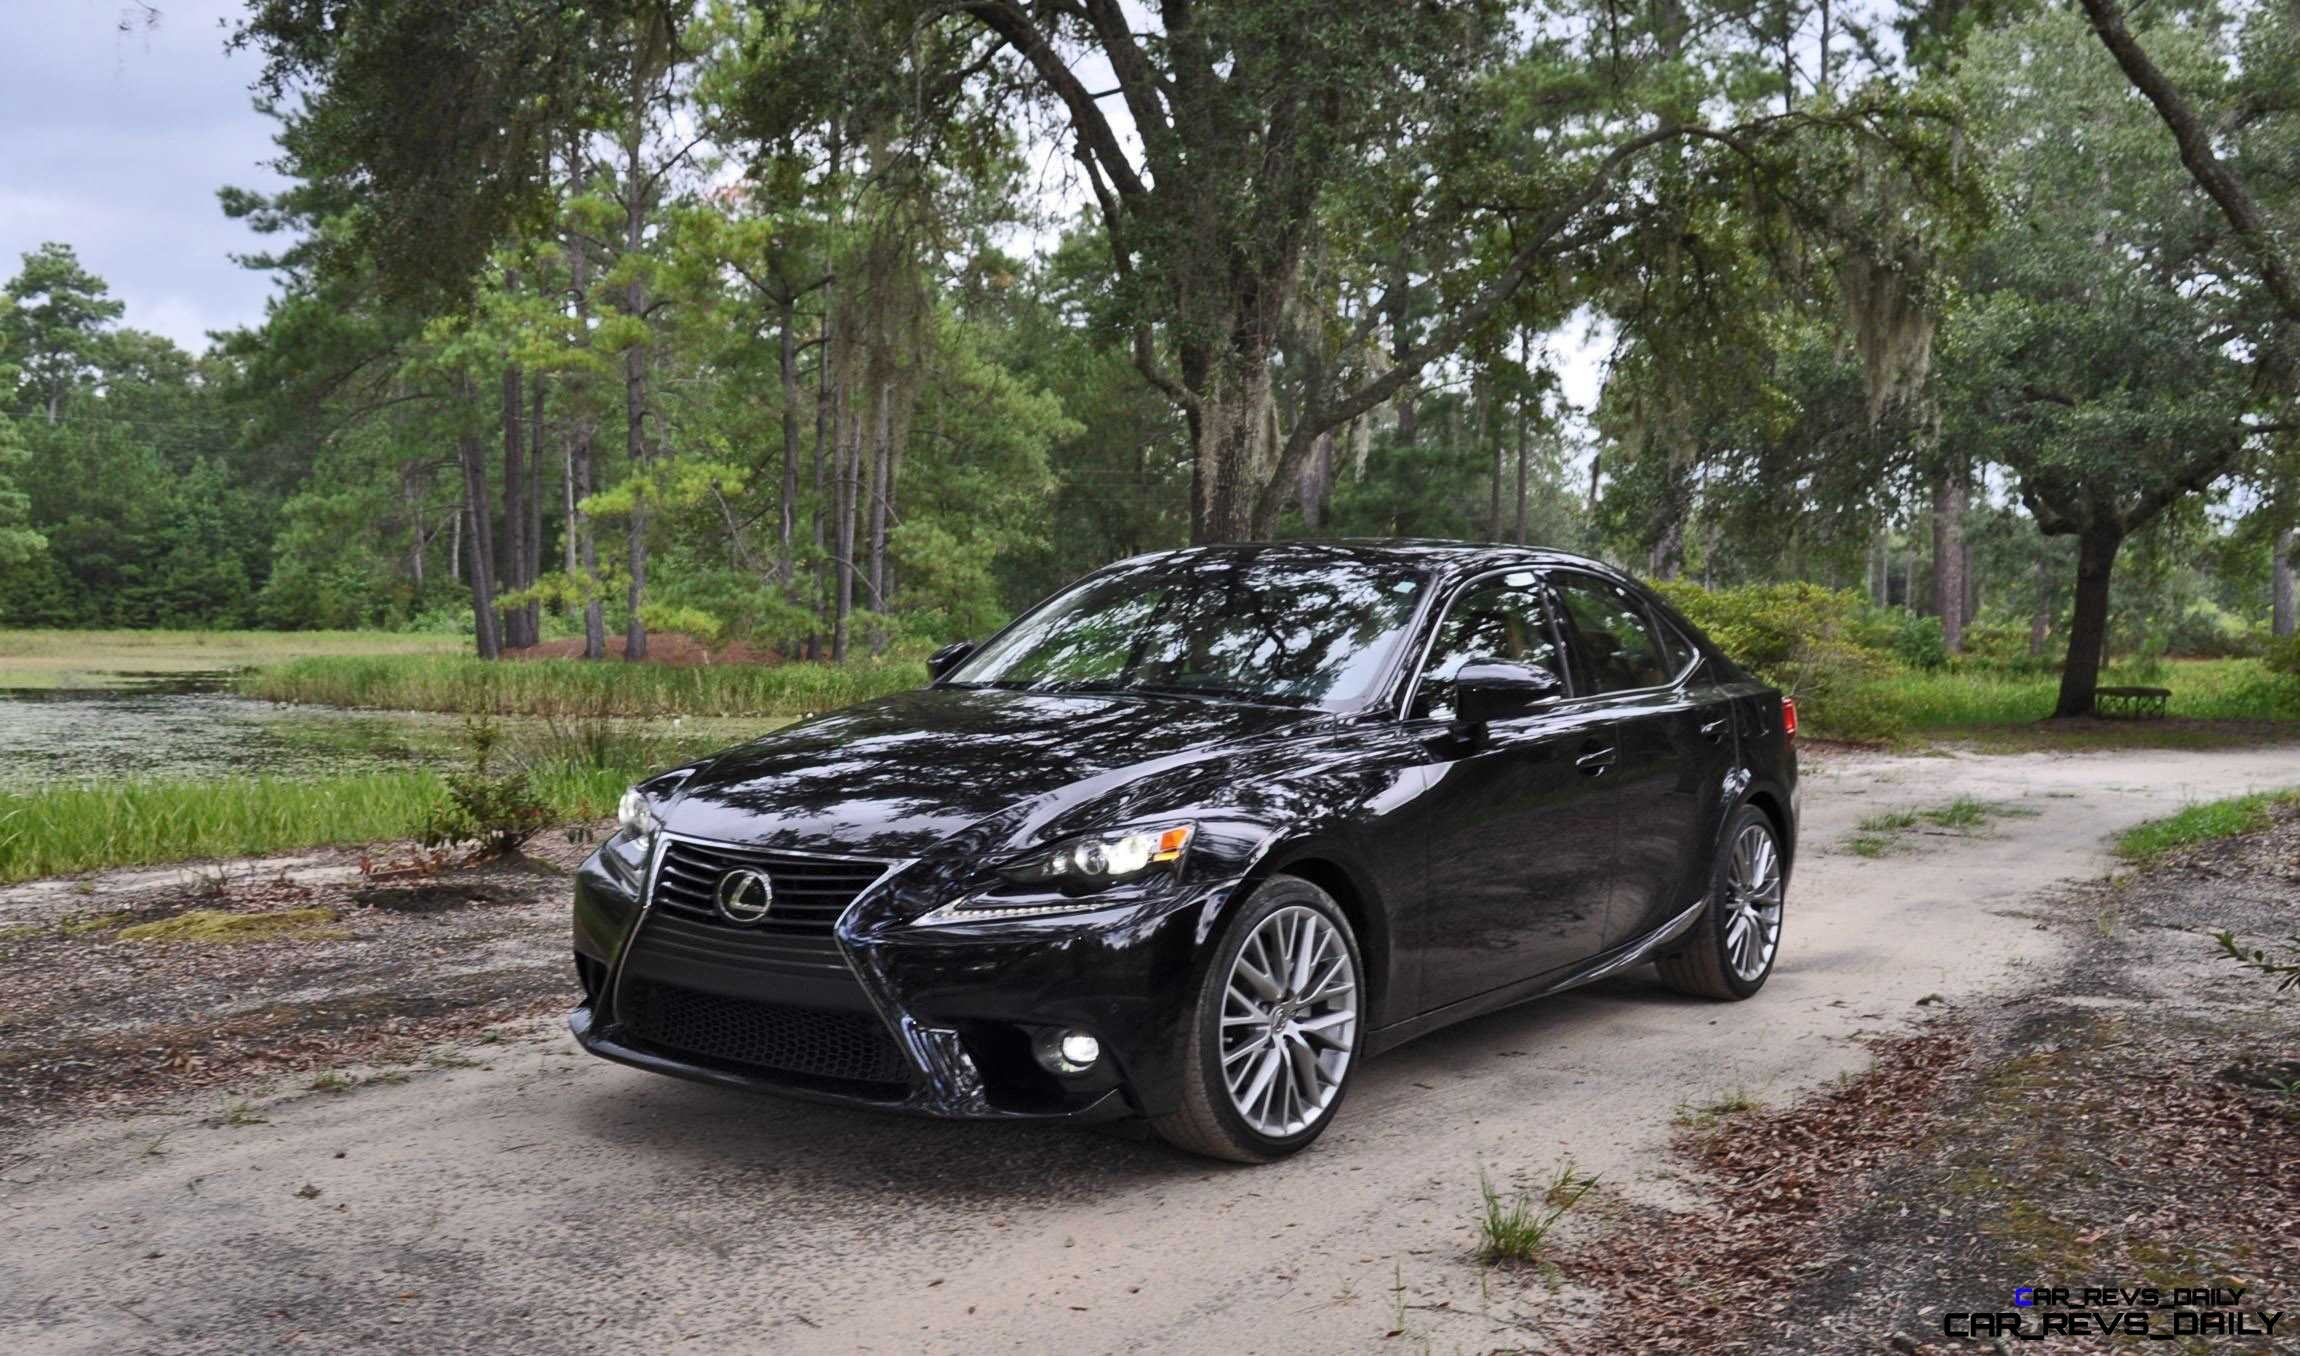 2015 Lexus IS250 76